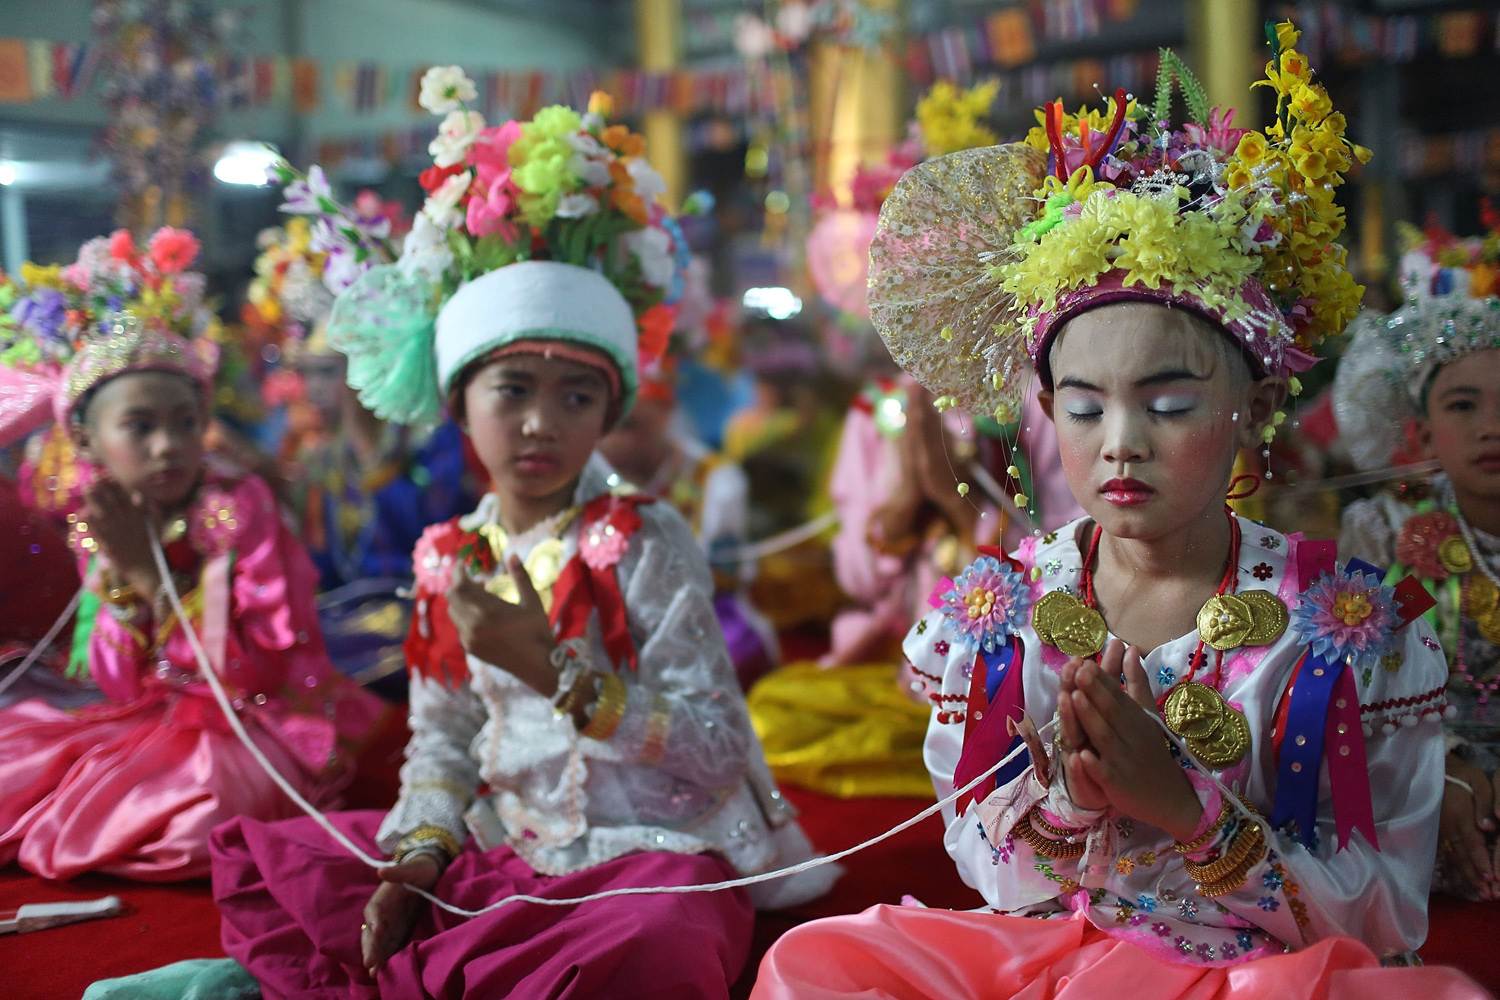 Apr. 8, 2014. A Tai Yai boy prays during a ceremony in Mae Hong Son, Thailand. Poy Sang Long is a Buddhist novice ordination ceremony of the Shan people or Tai Yai.